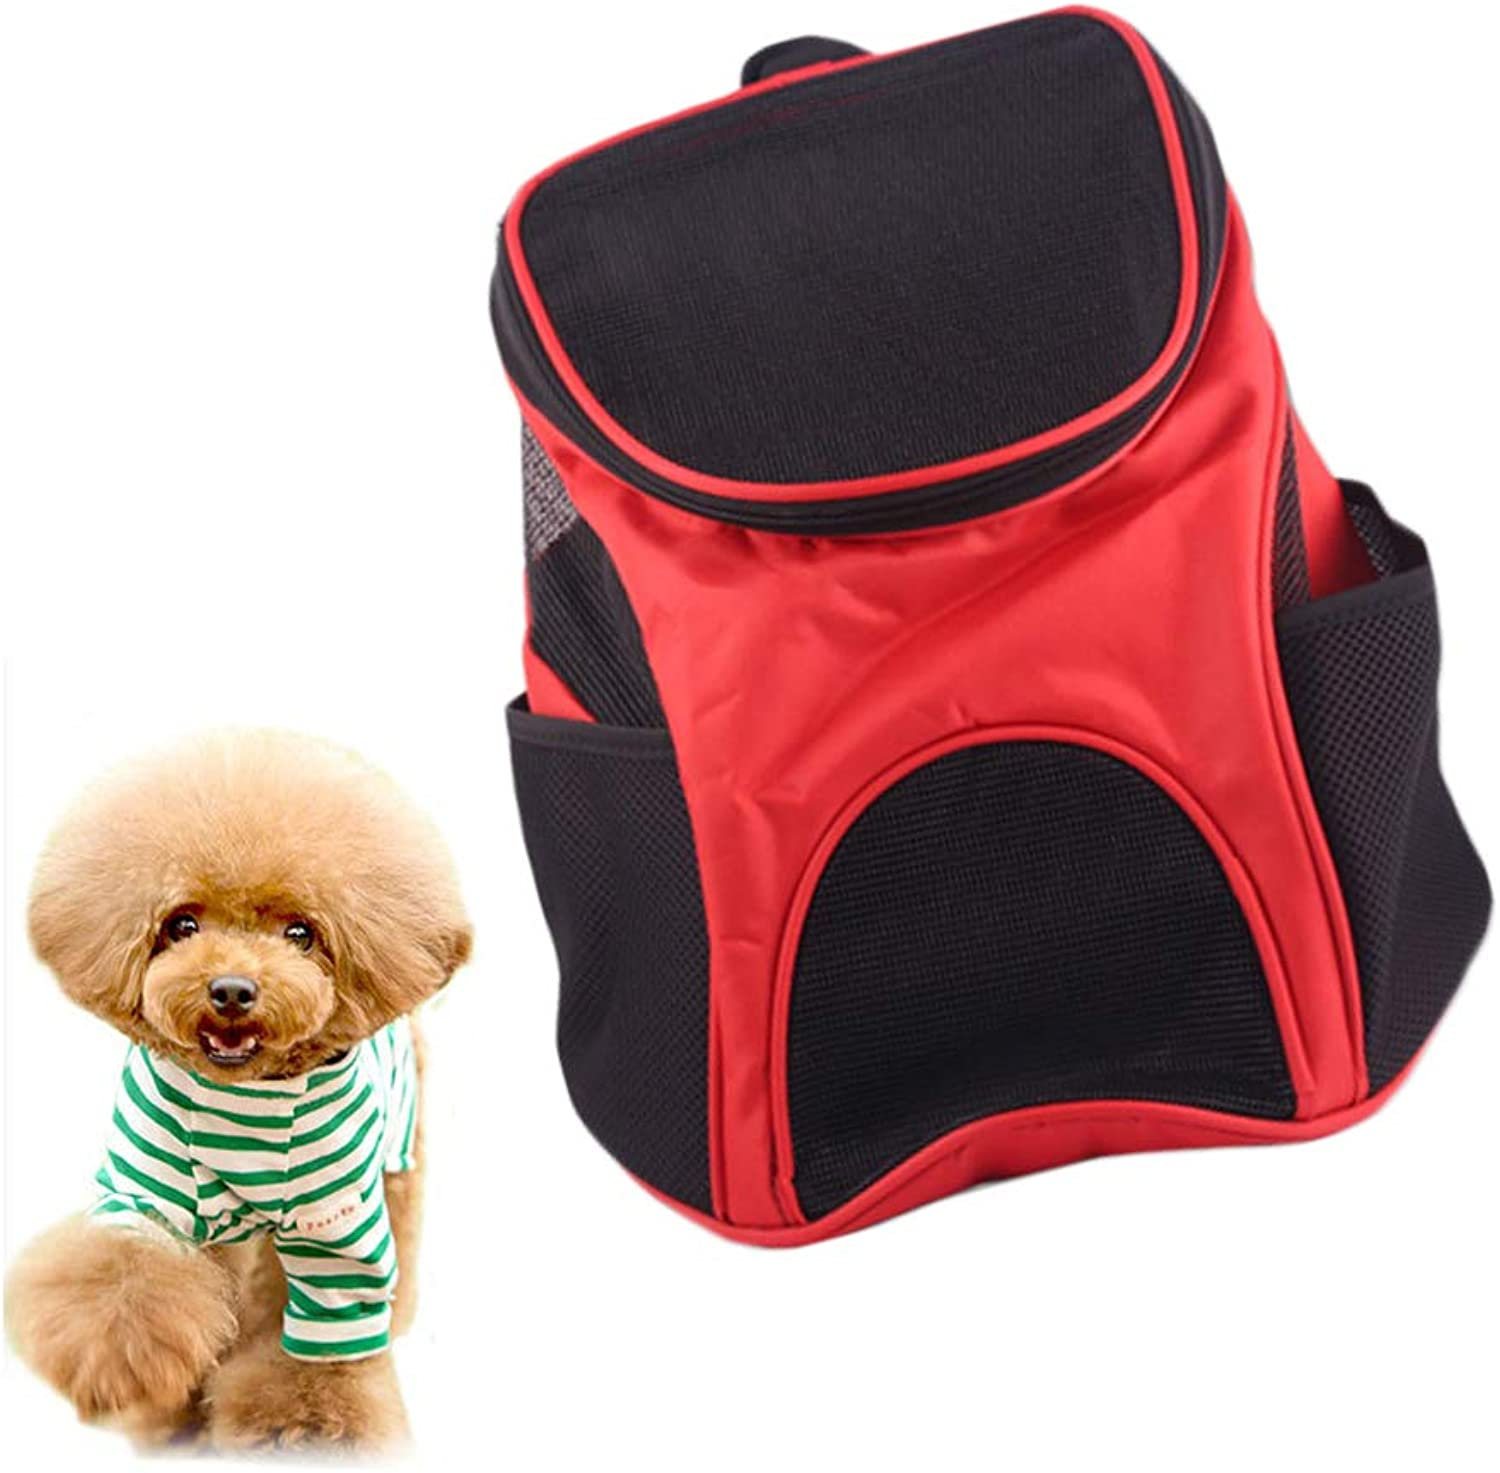 Pet Carrying Case, Cat Dog Teddy Breathable Mesh Backpack, Oxford Mesh Backpack Red